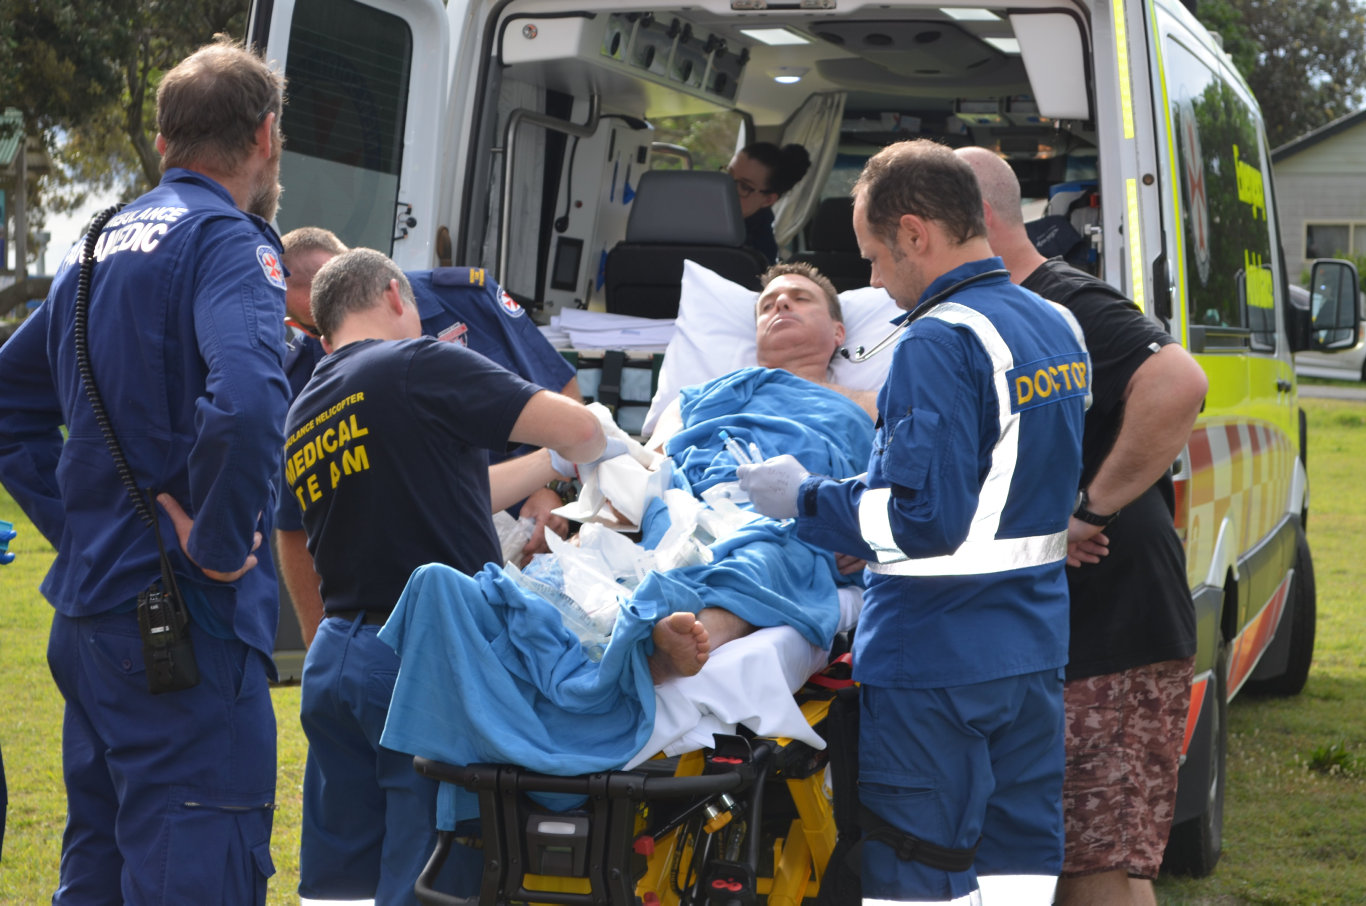 One of the men a marlin has speared when it got into their boat off Wooli on Thursday, receiving treatment before he was flown to Coffs Harbour hospital.